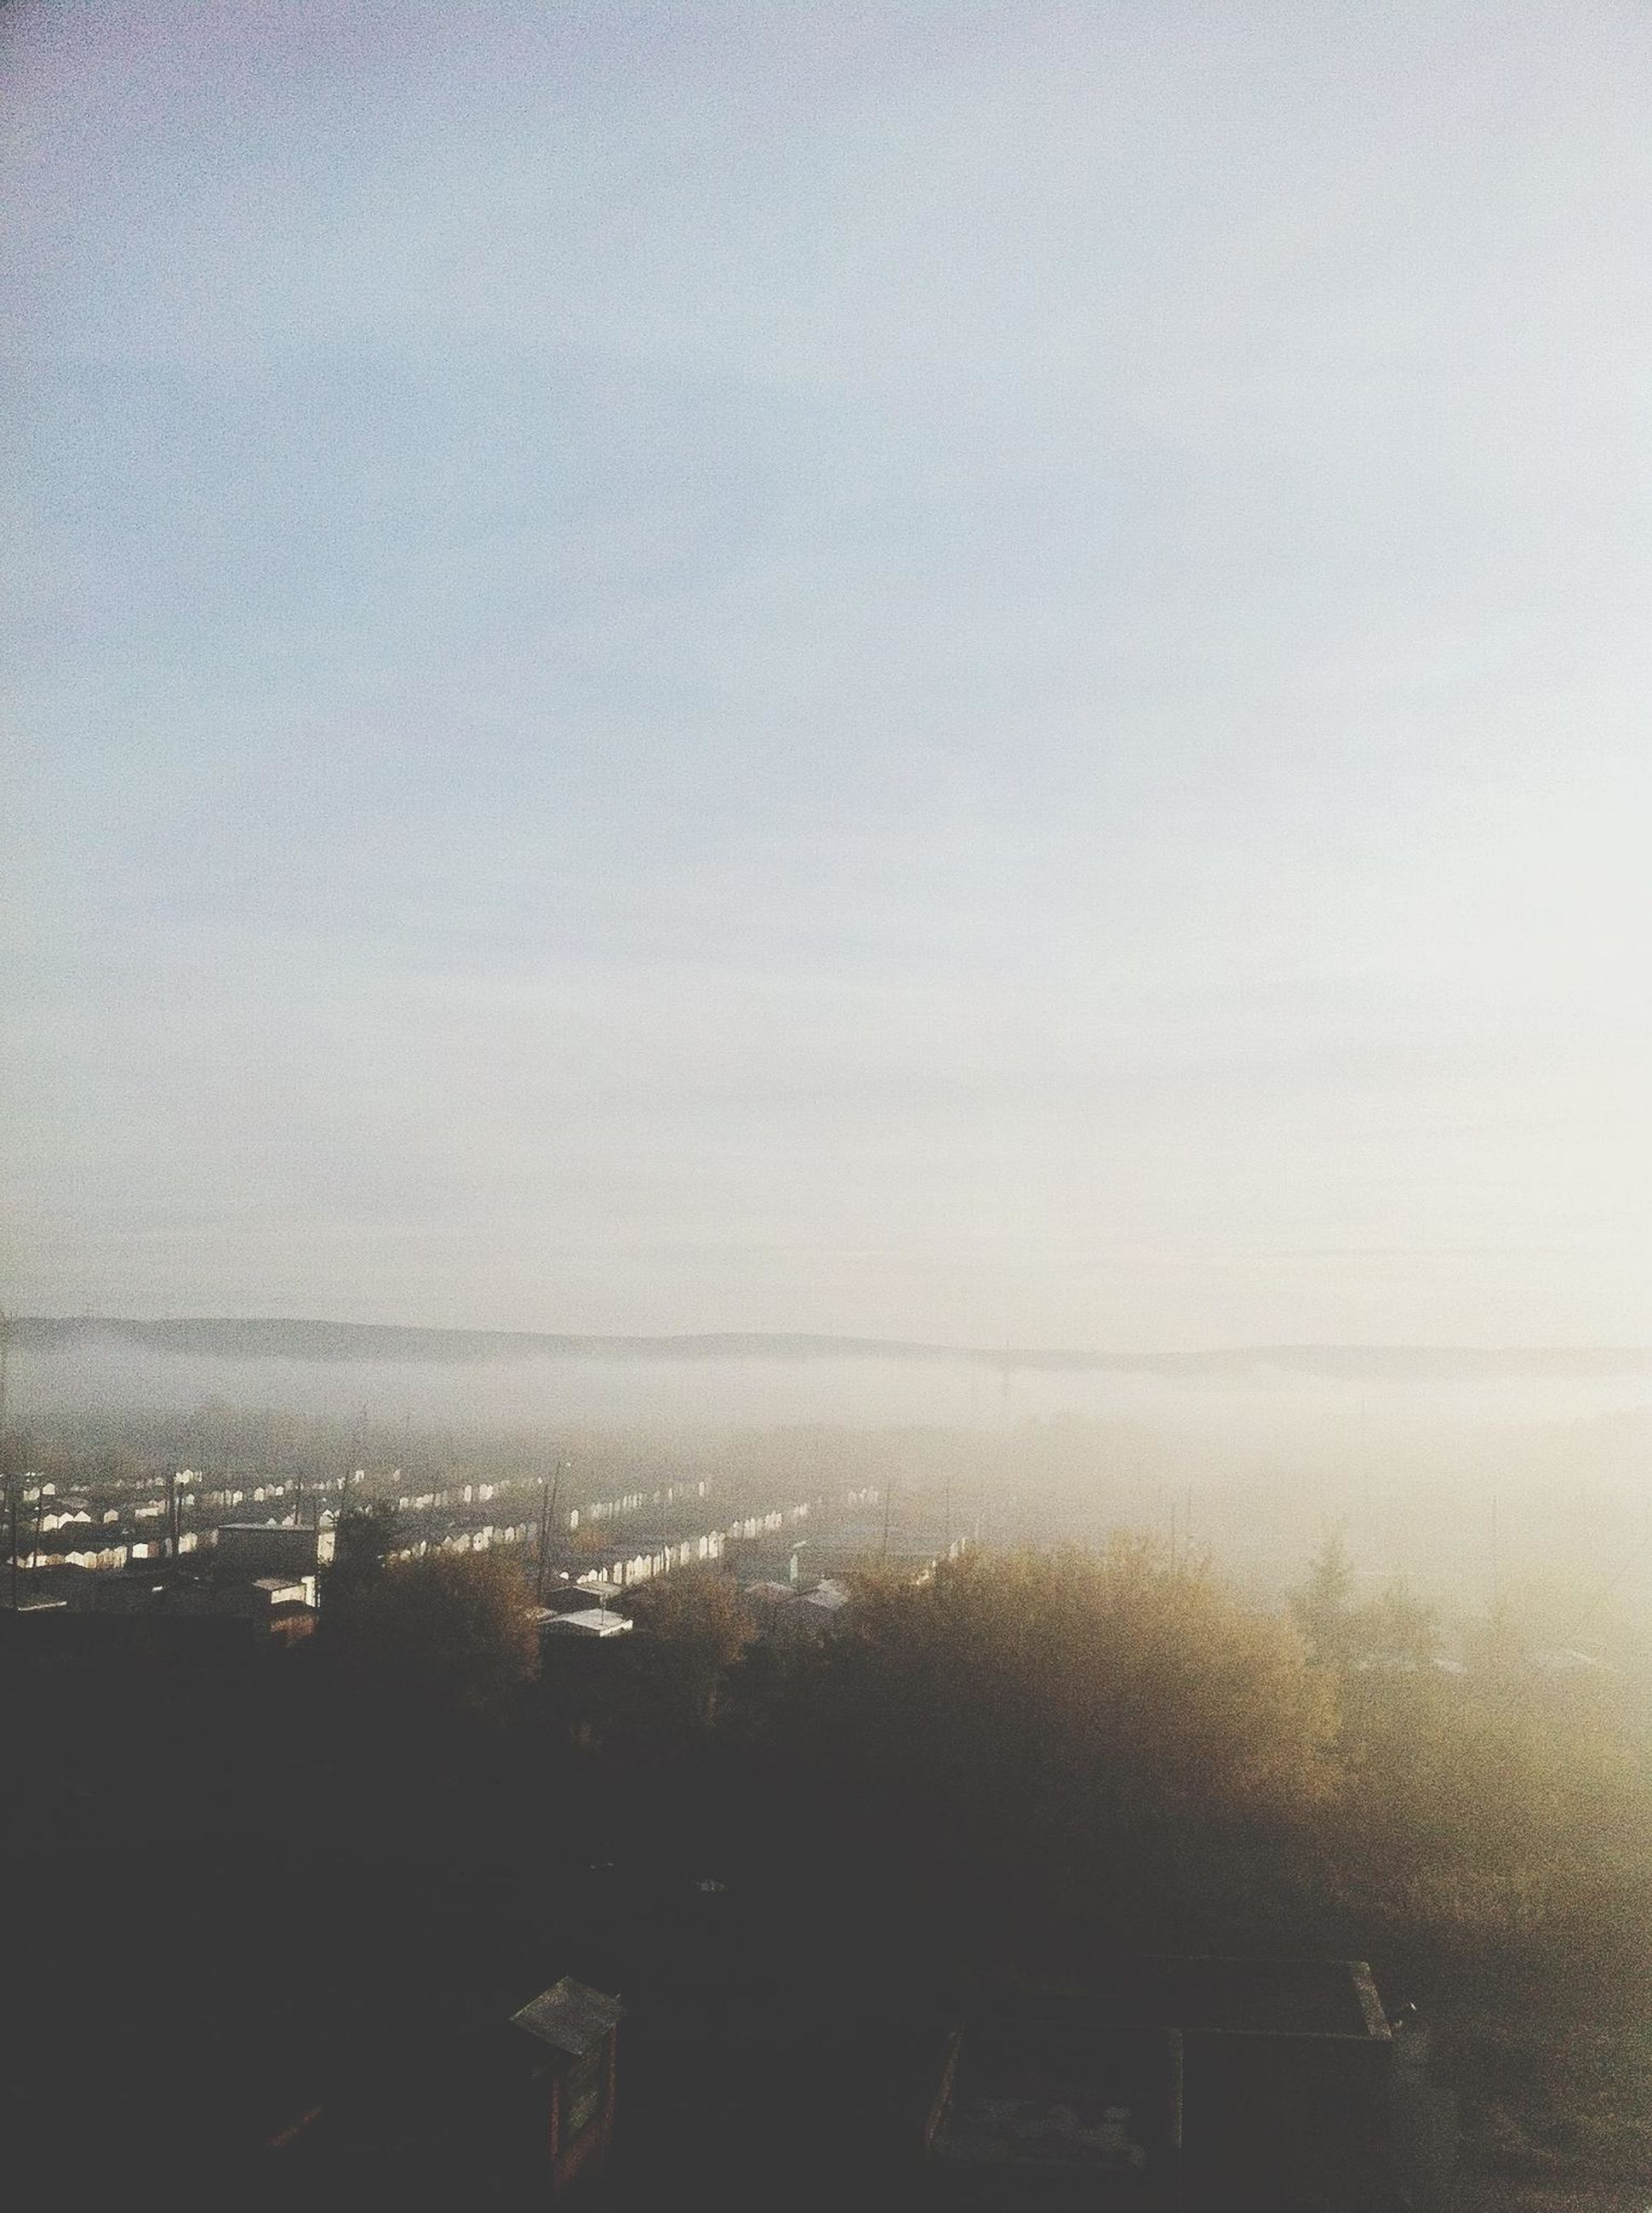 sky, water, copy space, cityscape, fog, foggy, nature, aerial view, weather, scenics, sea, landscape, horizon over water, beauty in nature, city, tranquility, no people, tranquil scene, window